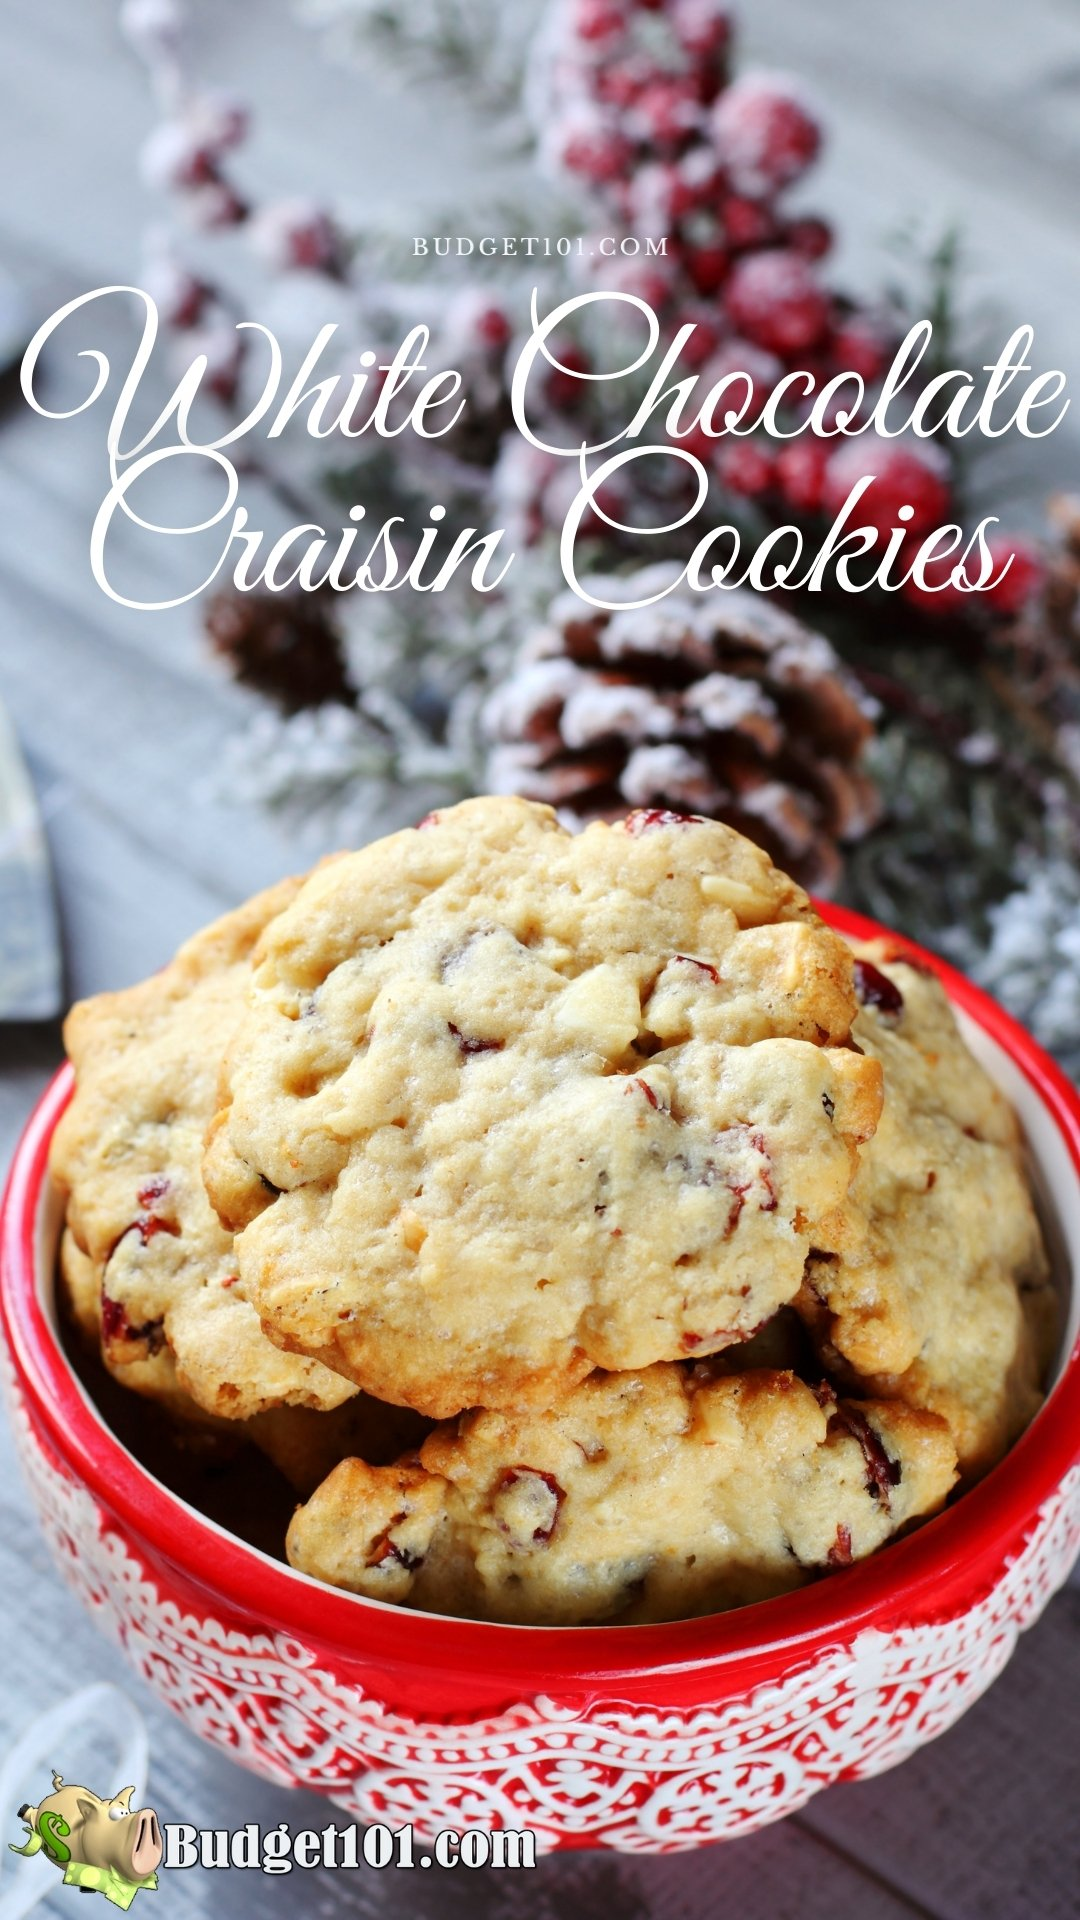 You love to bake? This is the perfect recipe for you! It's a delicious white chocolate craisin Cookie mix that can be made in just 15 minutes. Plus it stores perfectly in your pantry so you have a batch or two on hand until you're ready for a quick dessert, snack, or homemade gift. #Budget101 #CookieMixes #HomemadeMixes #MYOMixes #DirtCheap